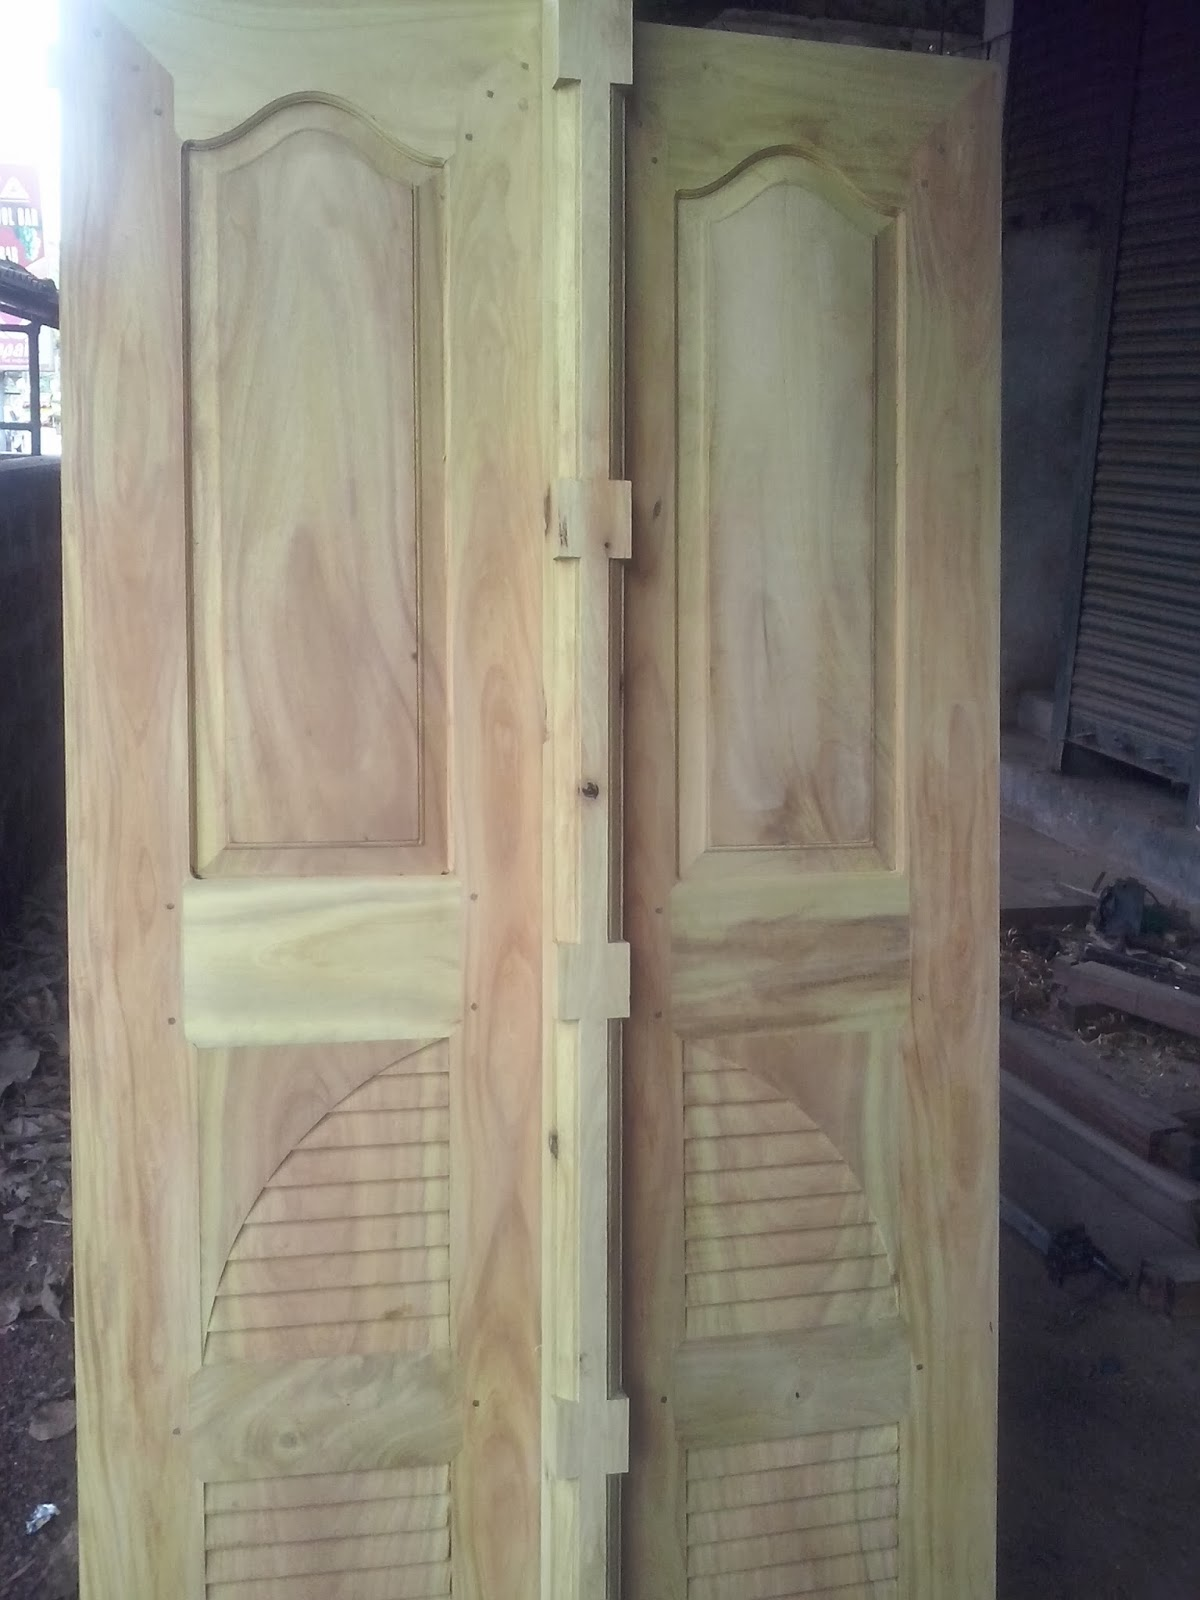 Bavas wood works main entrance wooden double door designs for Main entrance door design